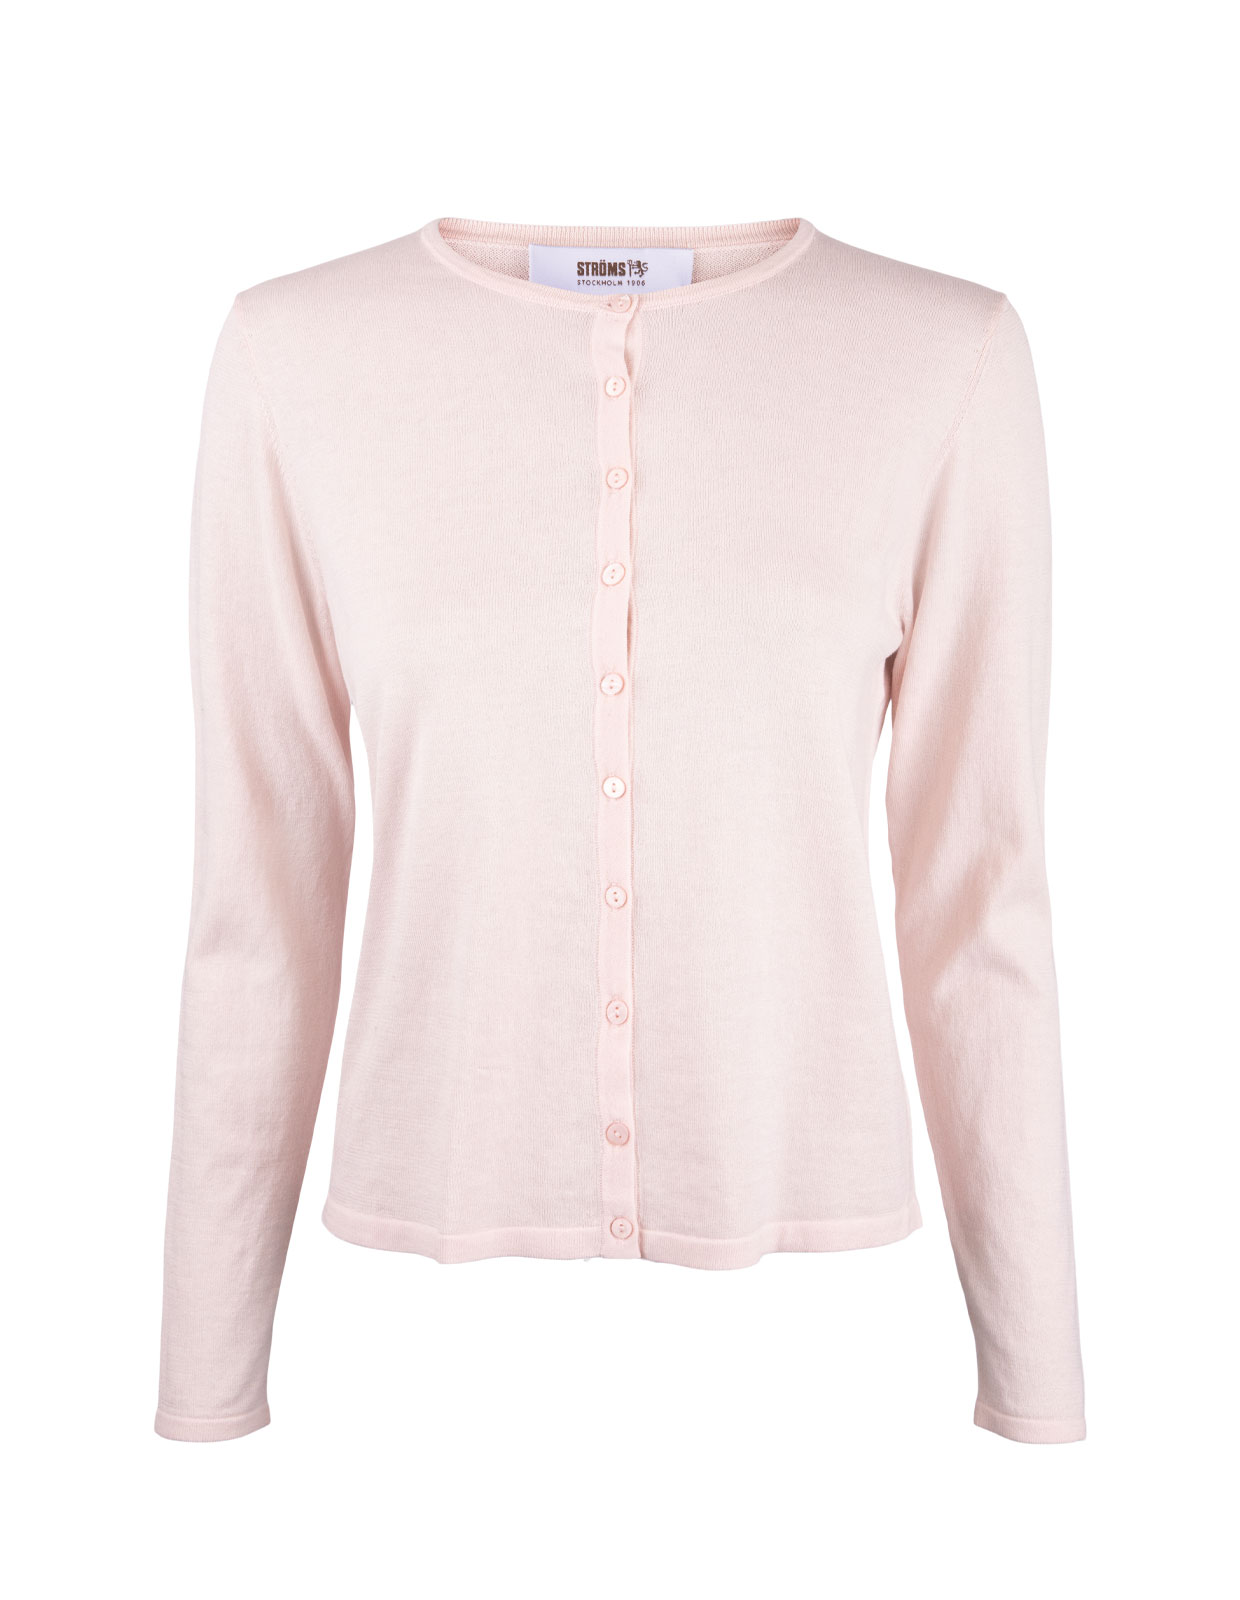 Cardigan Svea Peach Blush